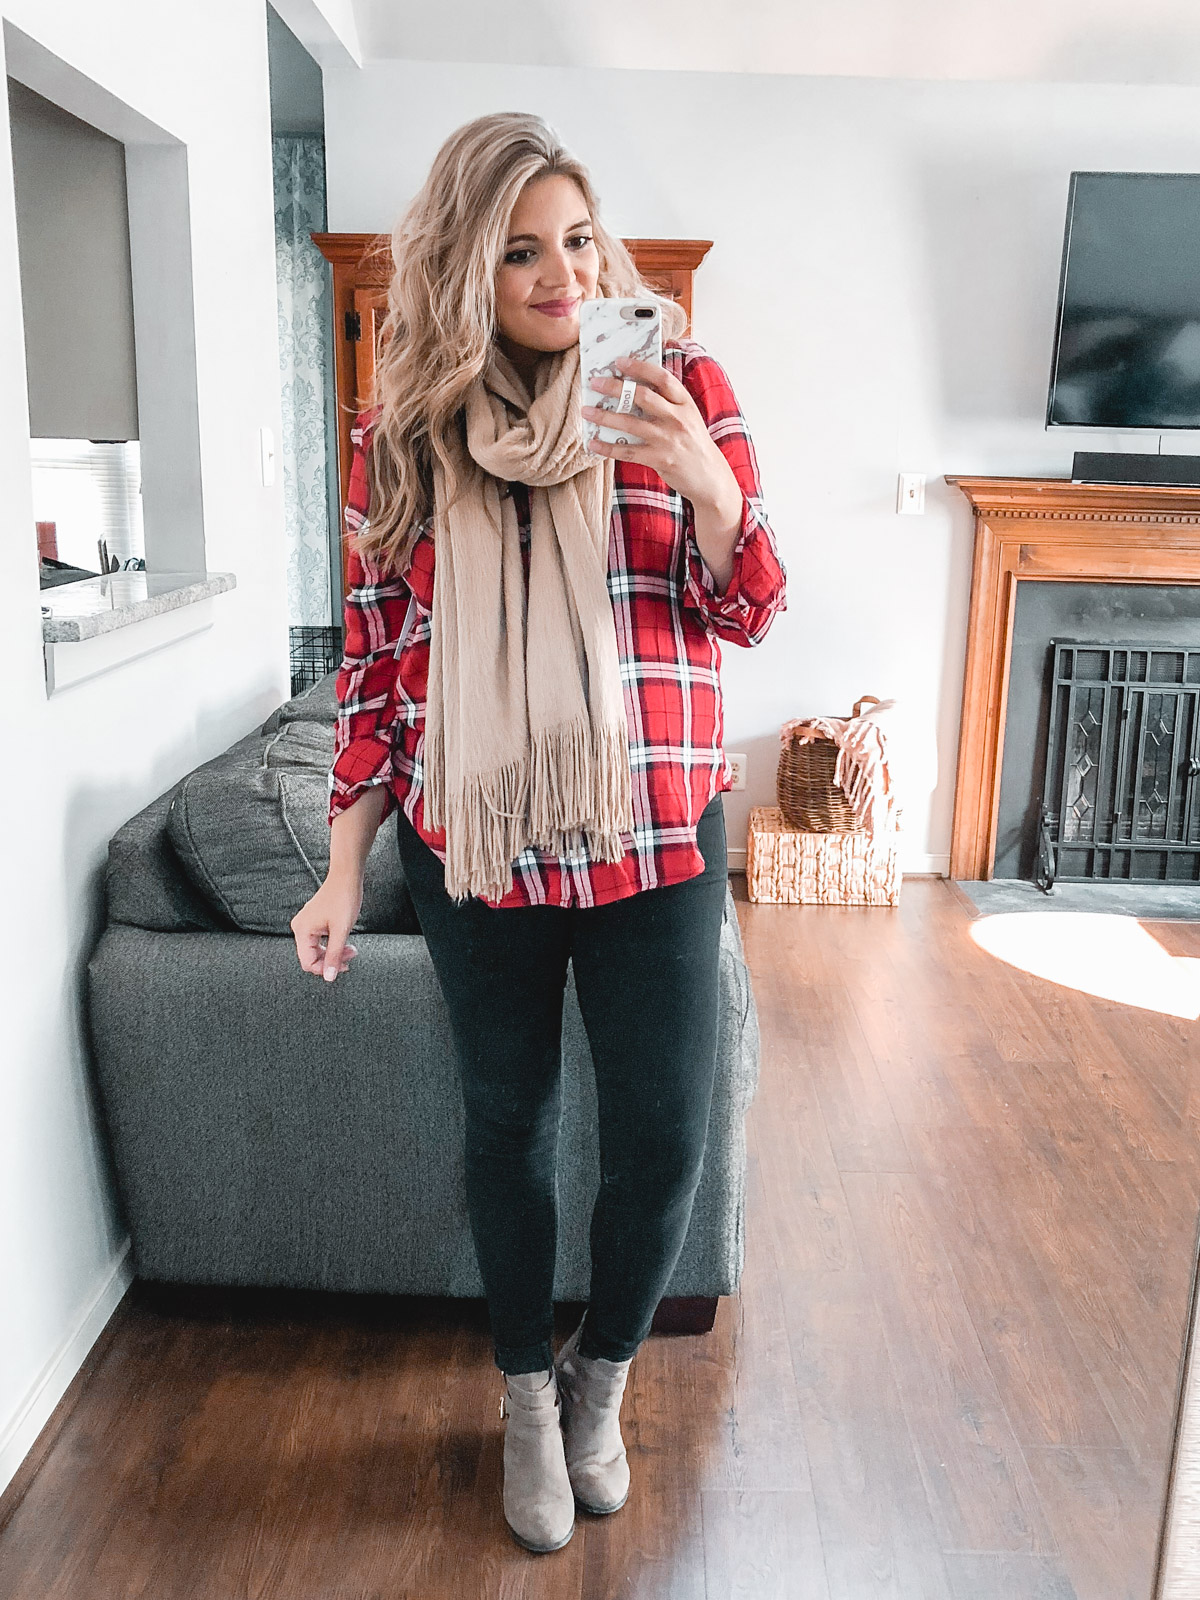 plaid top with a scarf outfit - Need plaid top outfit ideas? I'm sharing one $31 plaid top styled 15 different ways on bylaurenm.com!